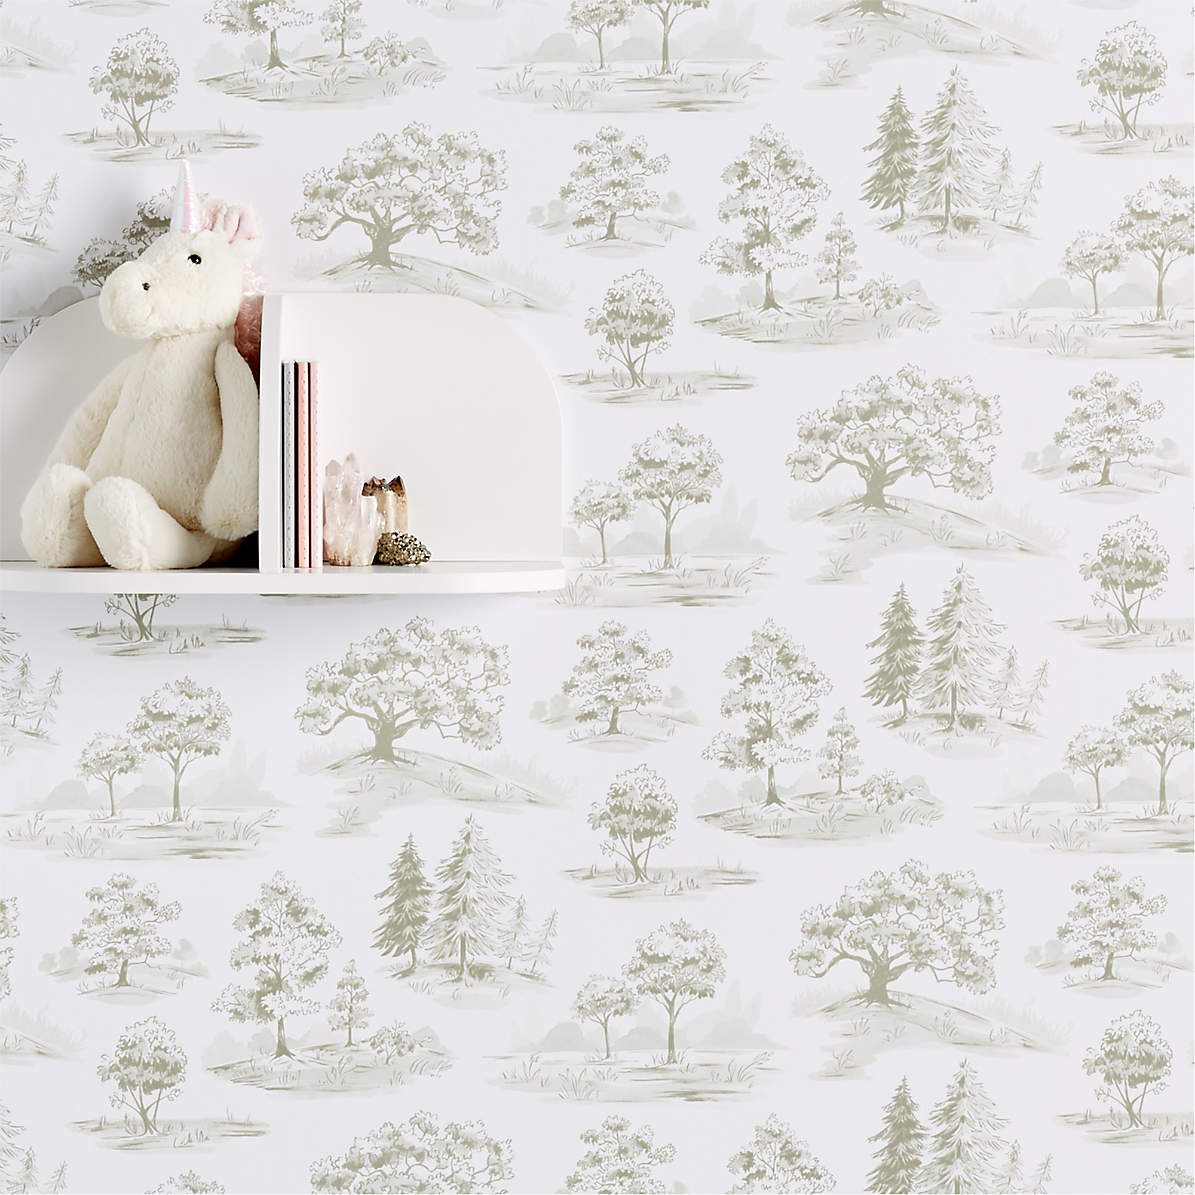 Chasing Paper Tree Toile Removable Wallpaper Reviews Crate And Barrel